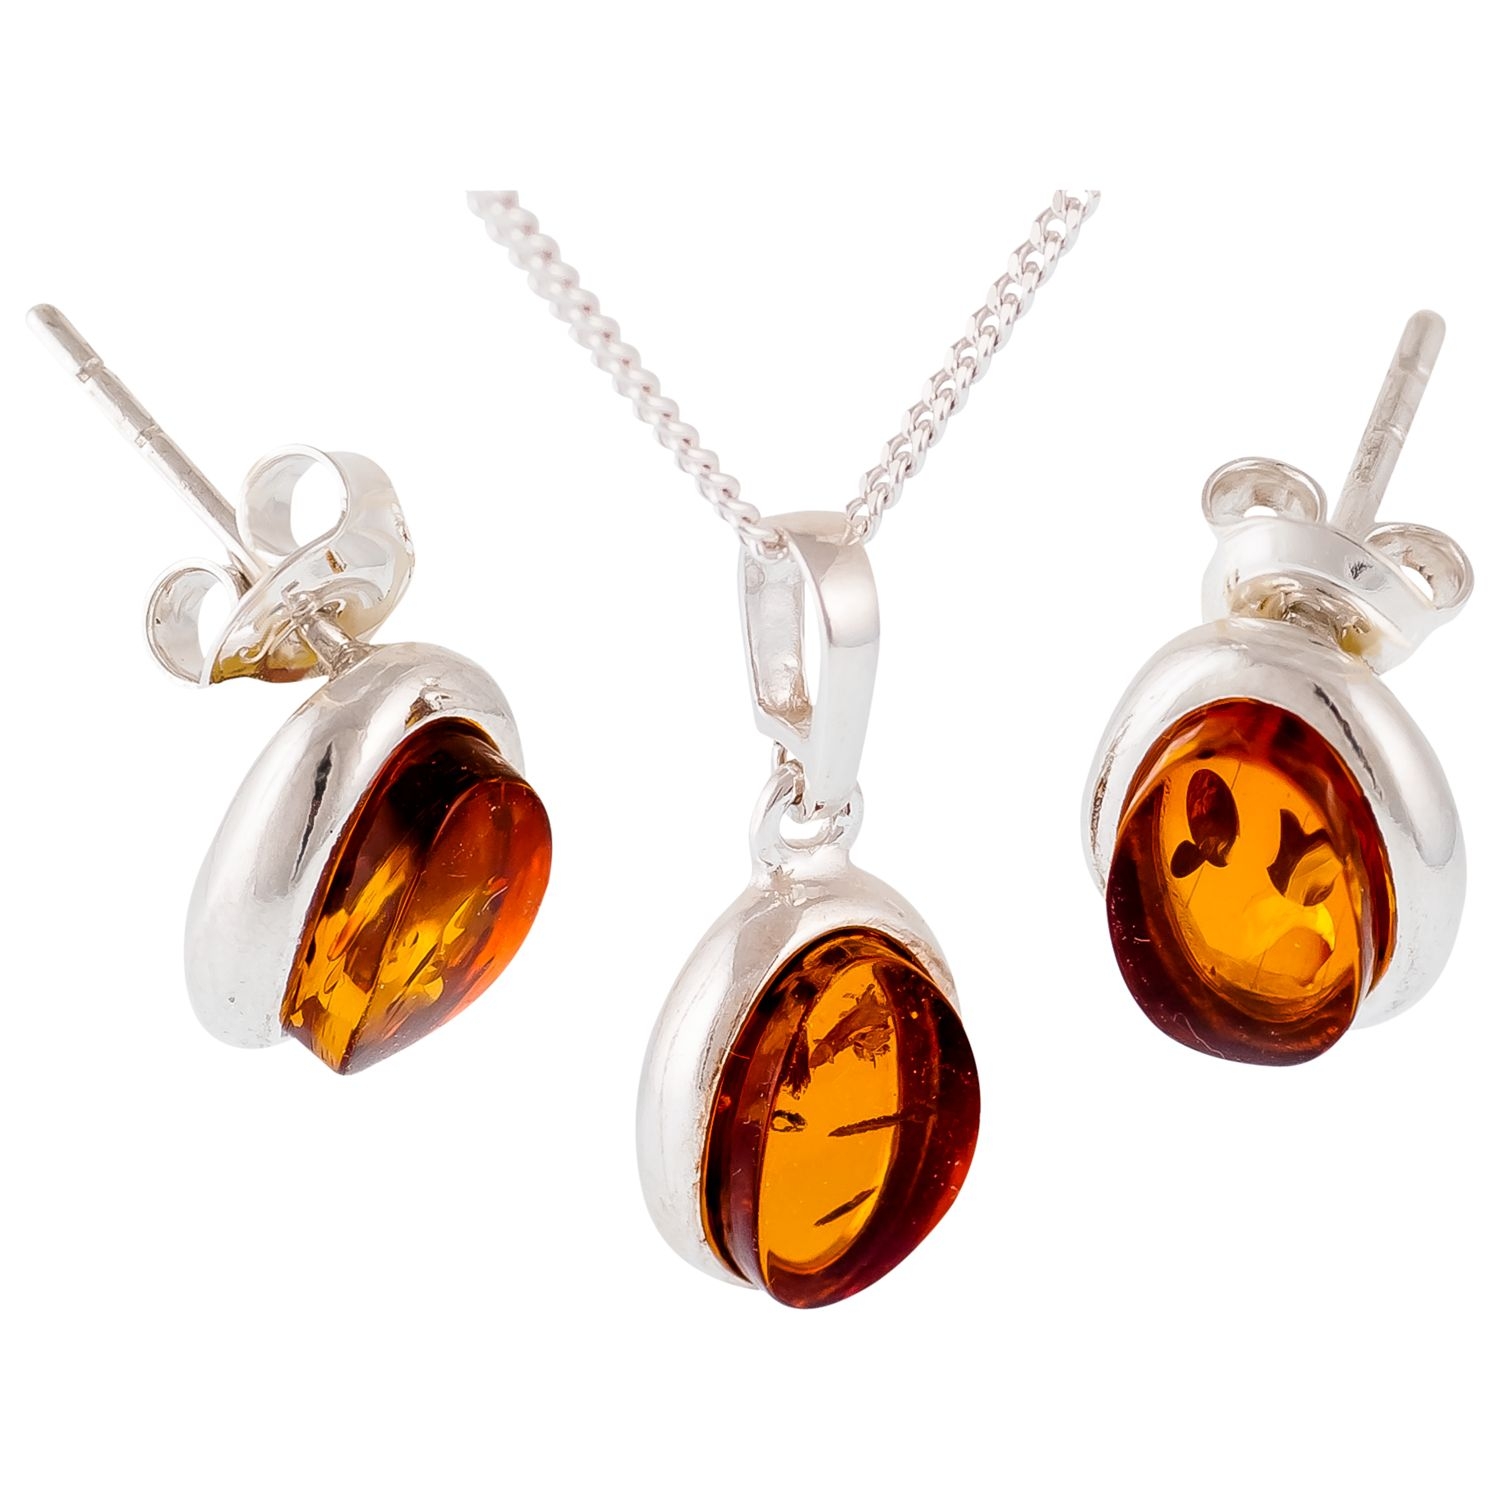 Be-Jewelled Be-Jewelled Sterling Silver Amber Pendant and Stud Earrings Gift Set, Amber